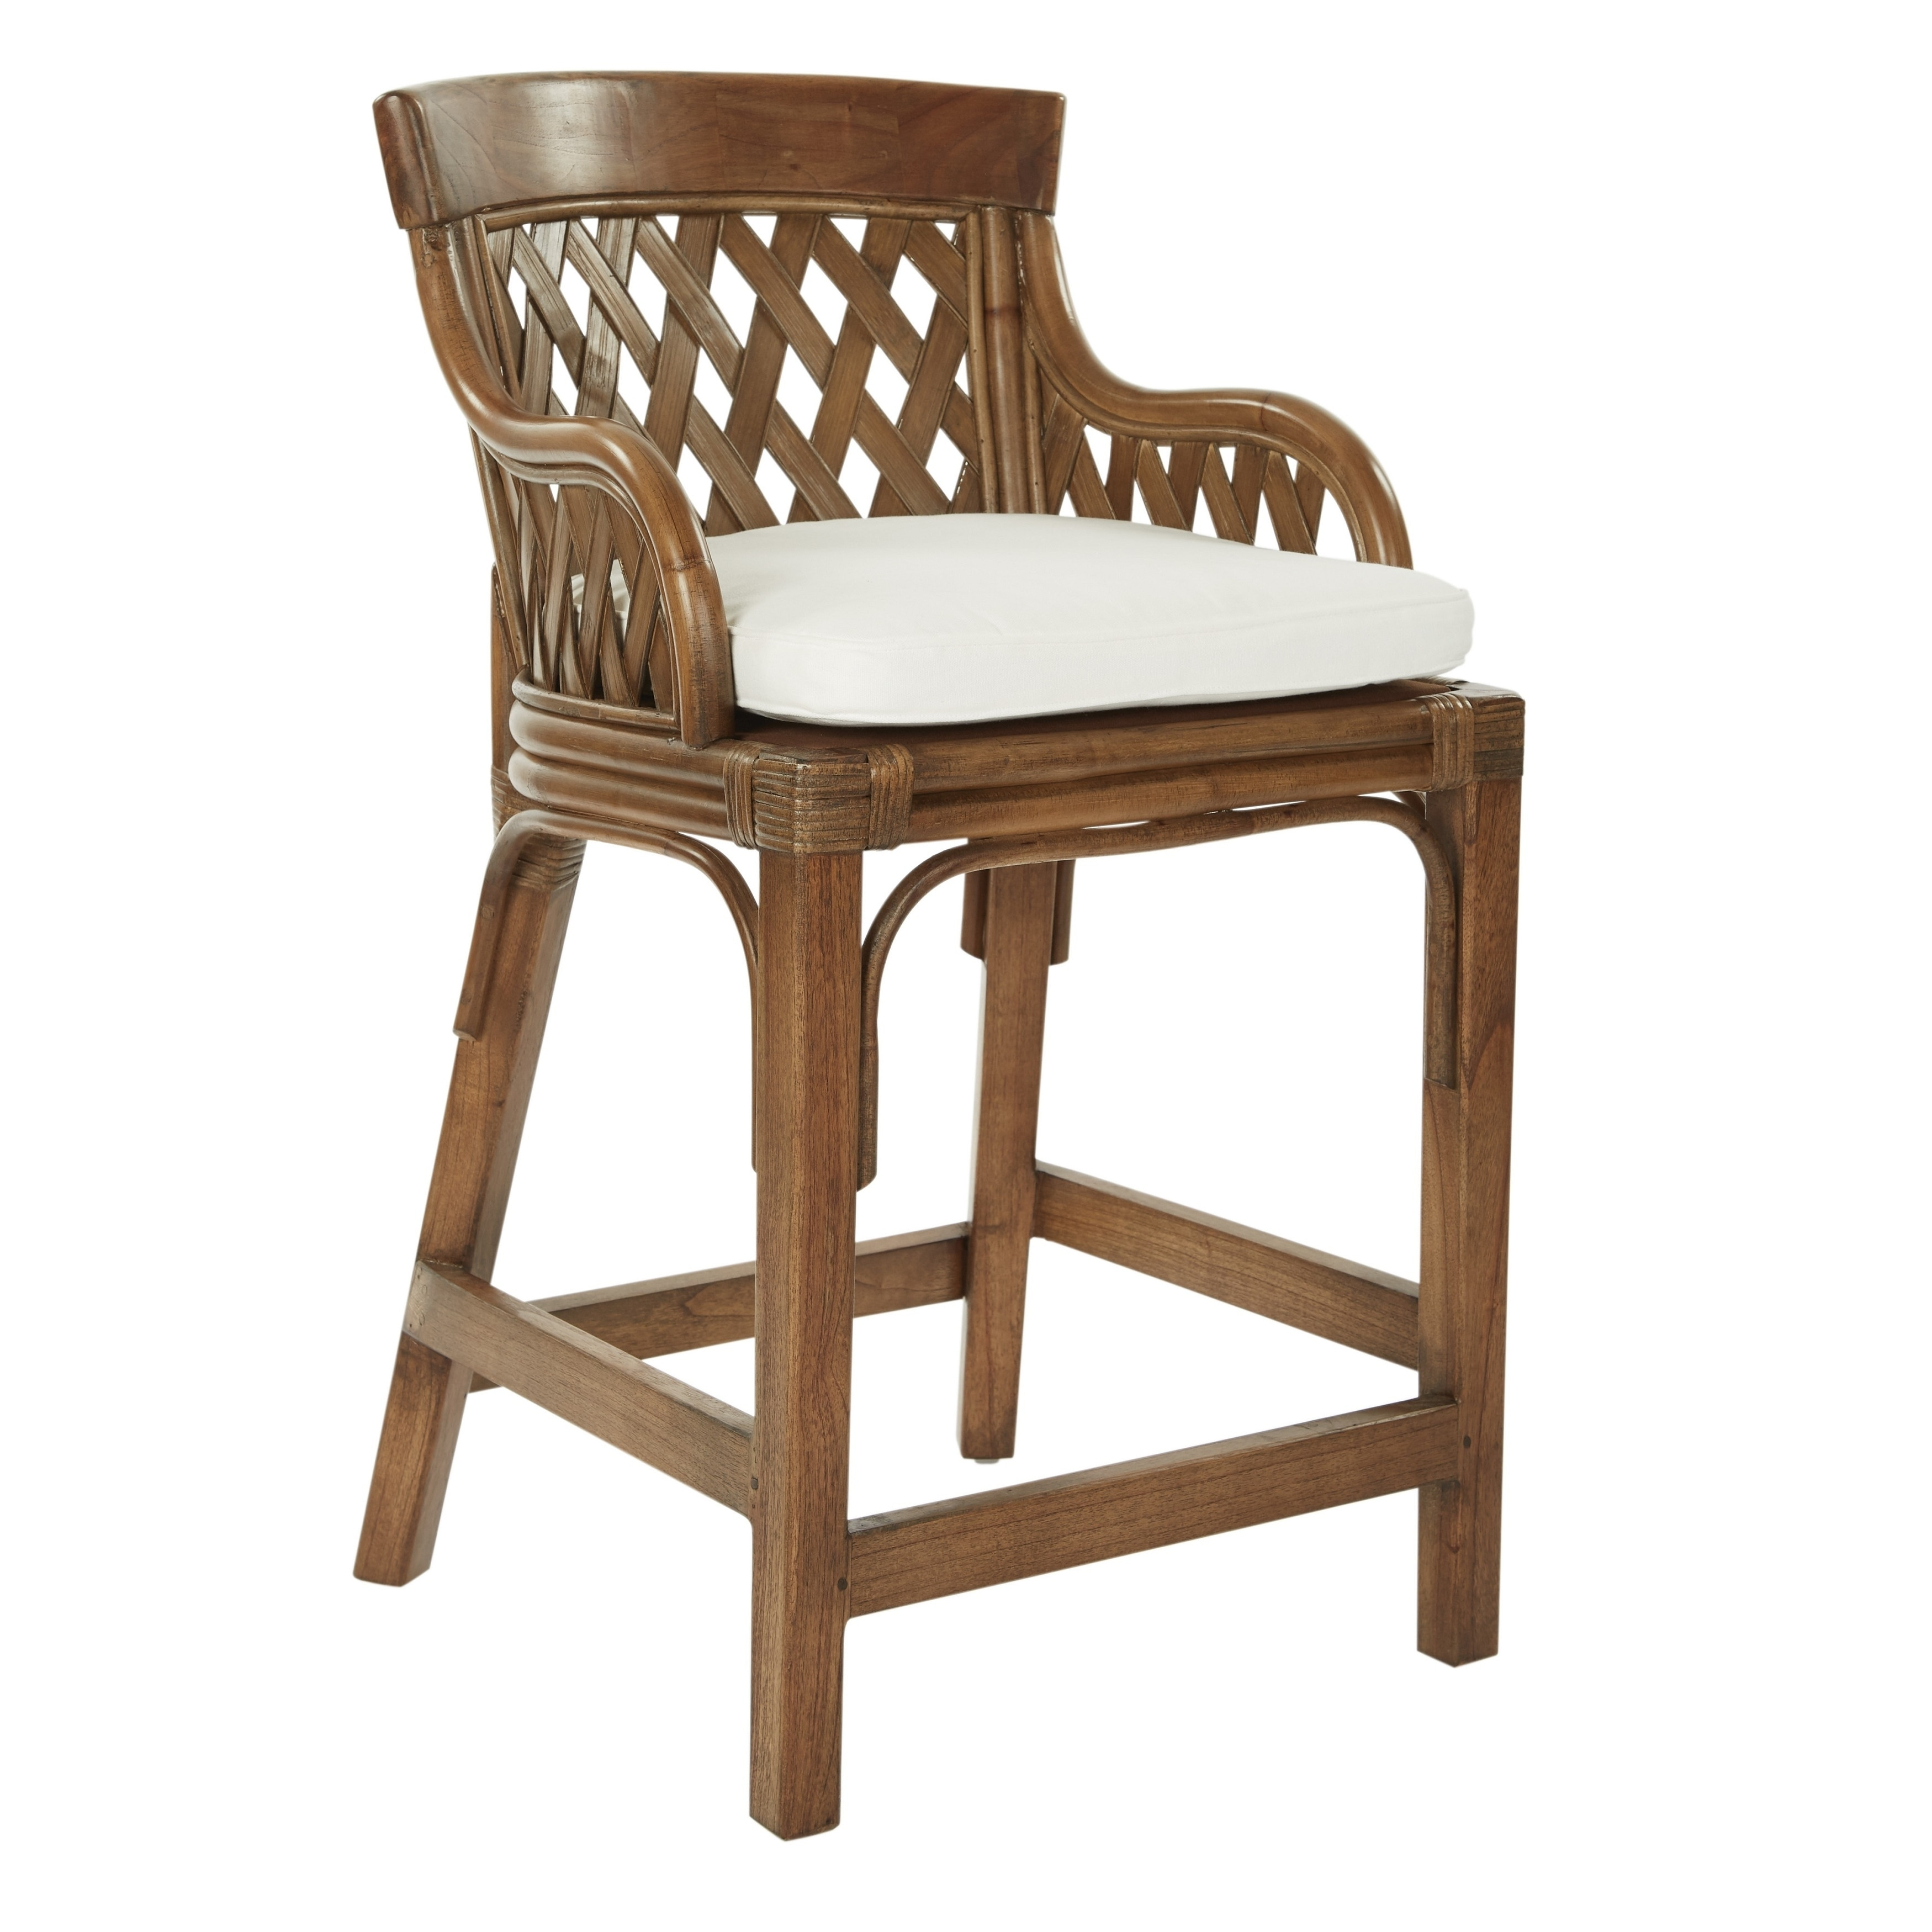 996035563de2 OSP Home Furnishings Plantation 24 inch Counter Stool with Woven ...